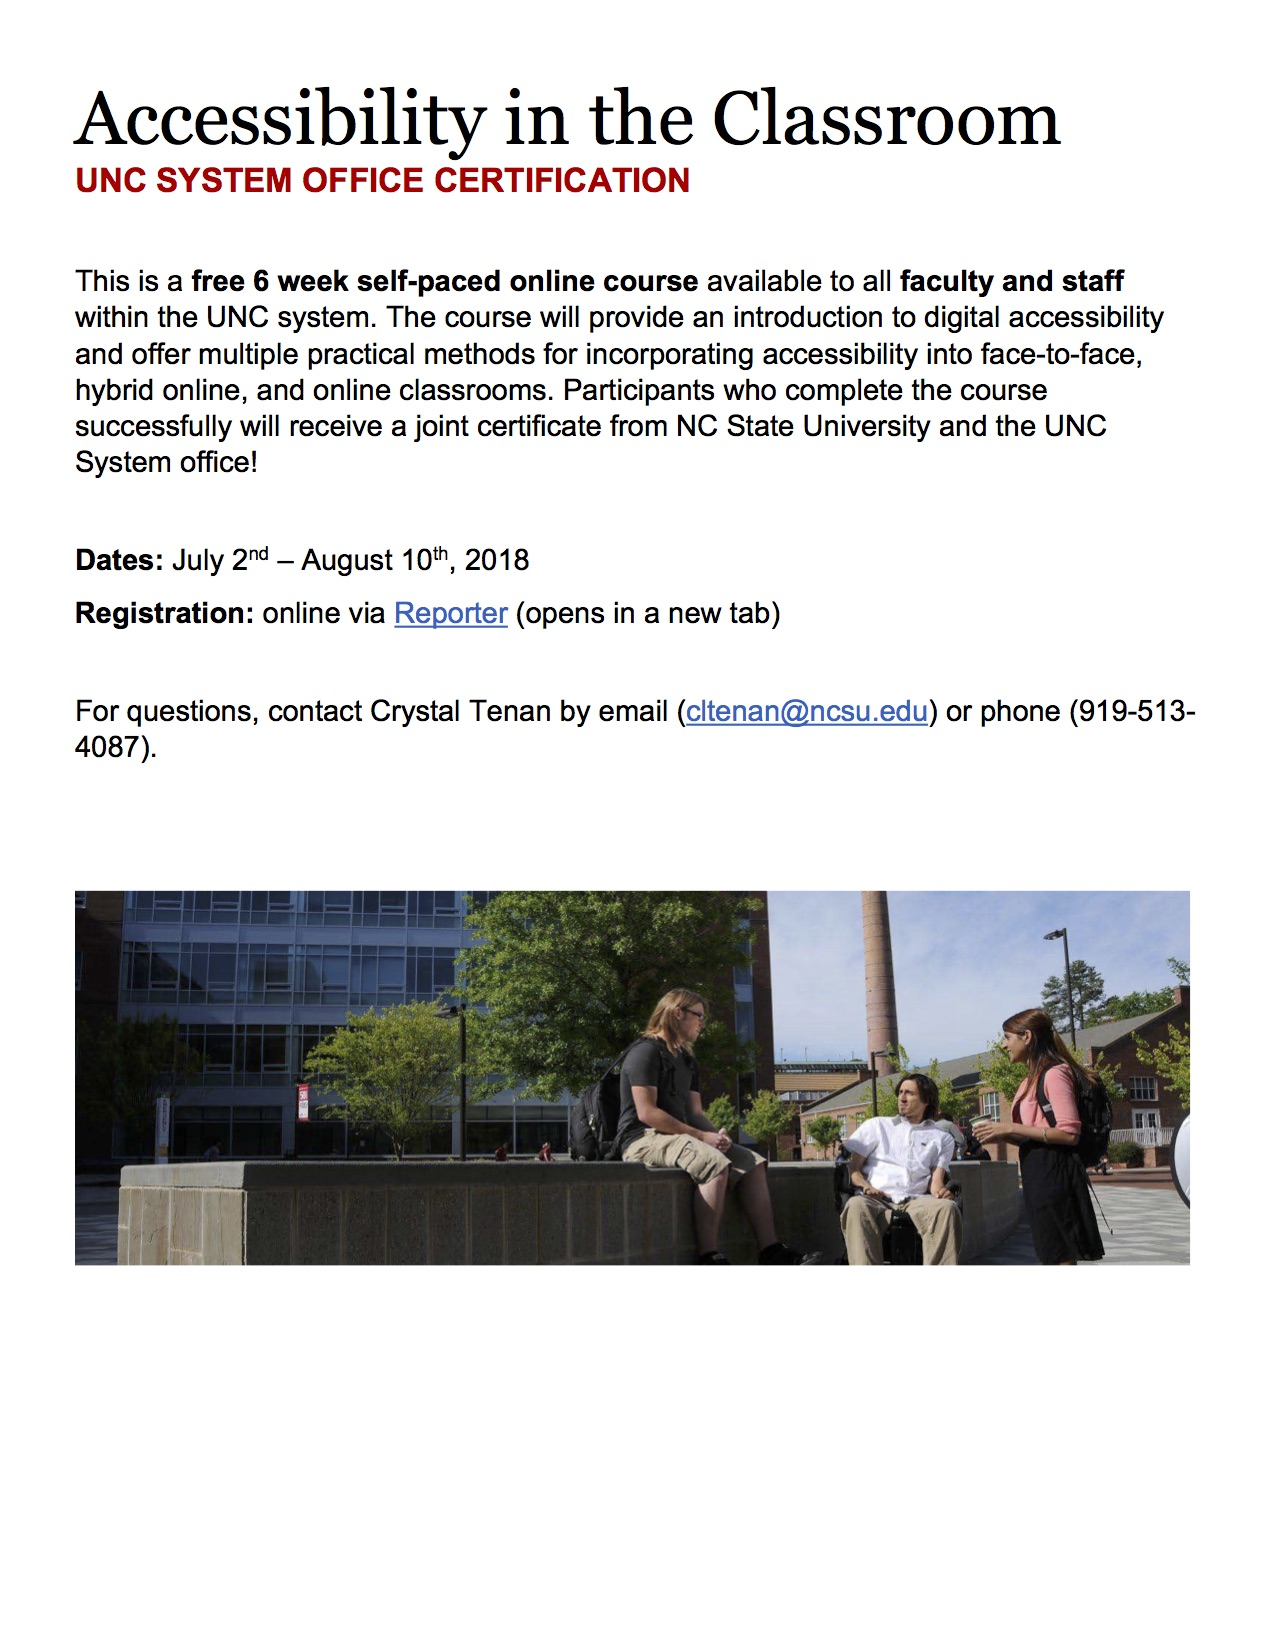 Accessibility in the Classroom FREE online course